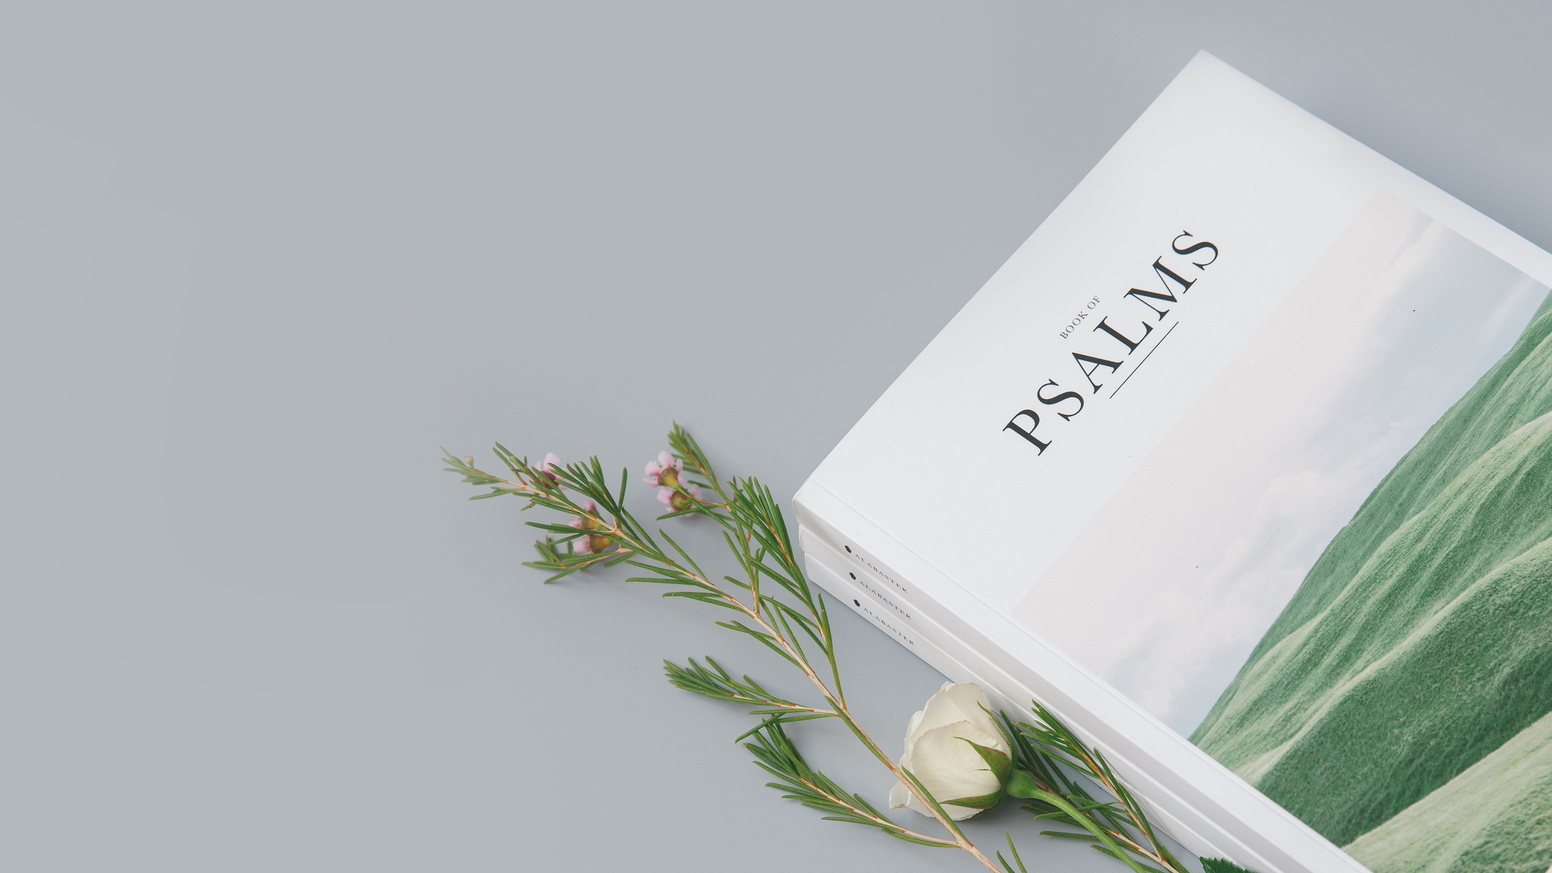 Visual imagery and thoughtful design integrated within the text of The Book of Psalms, for a beautiful reading experience.